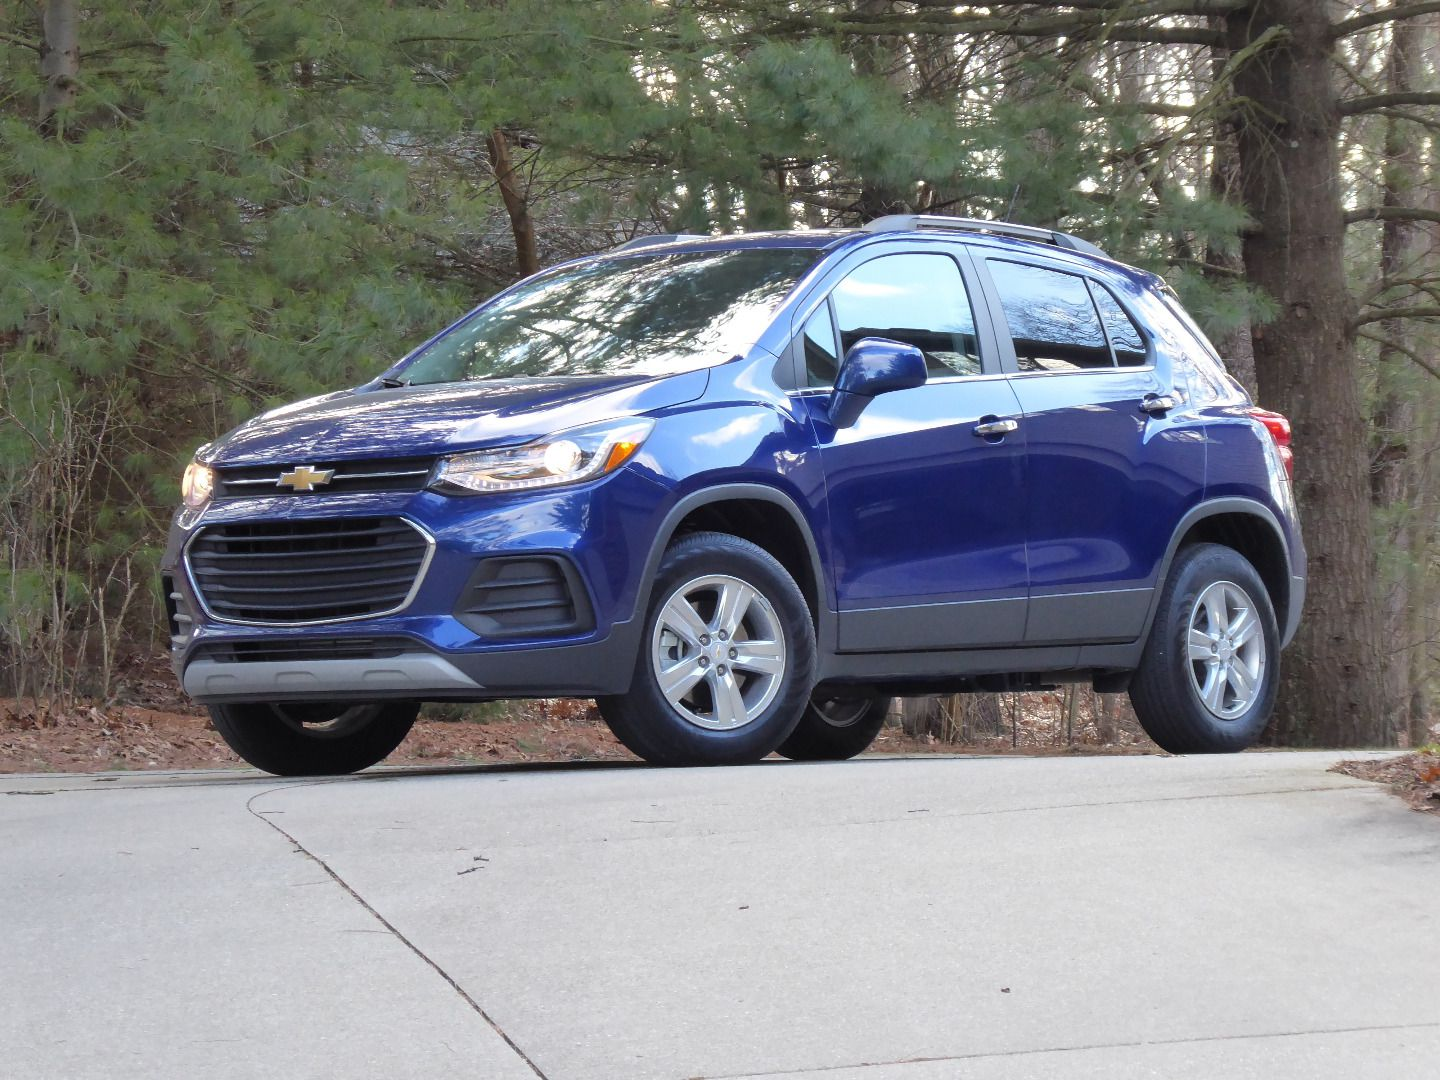 2017 Chevrolet Trax Road Test and Review